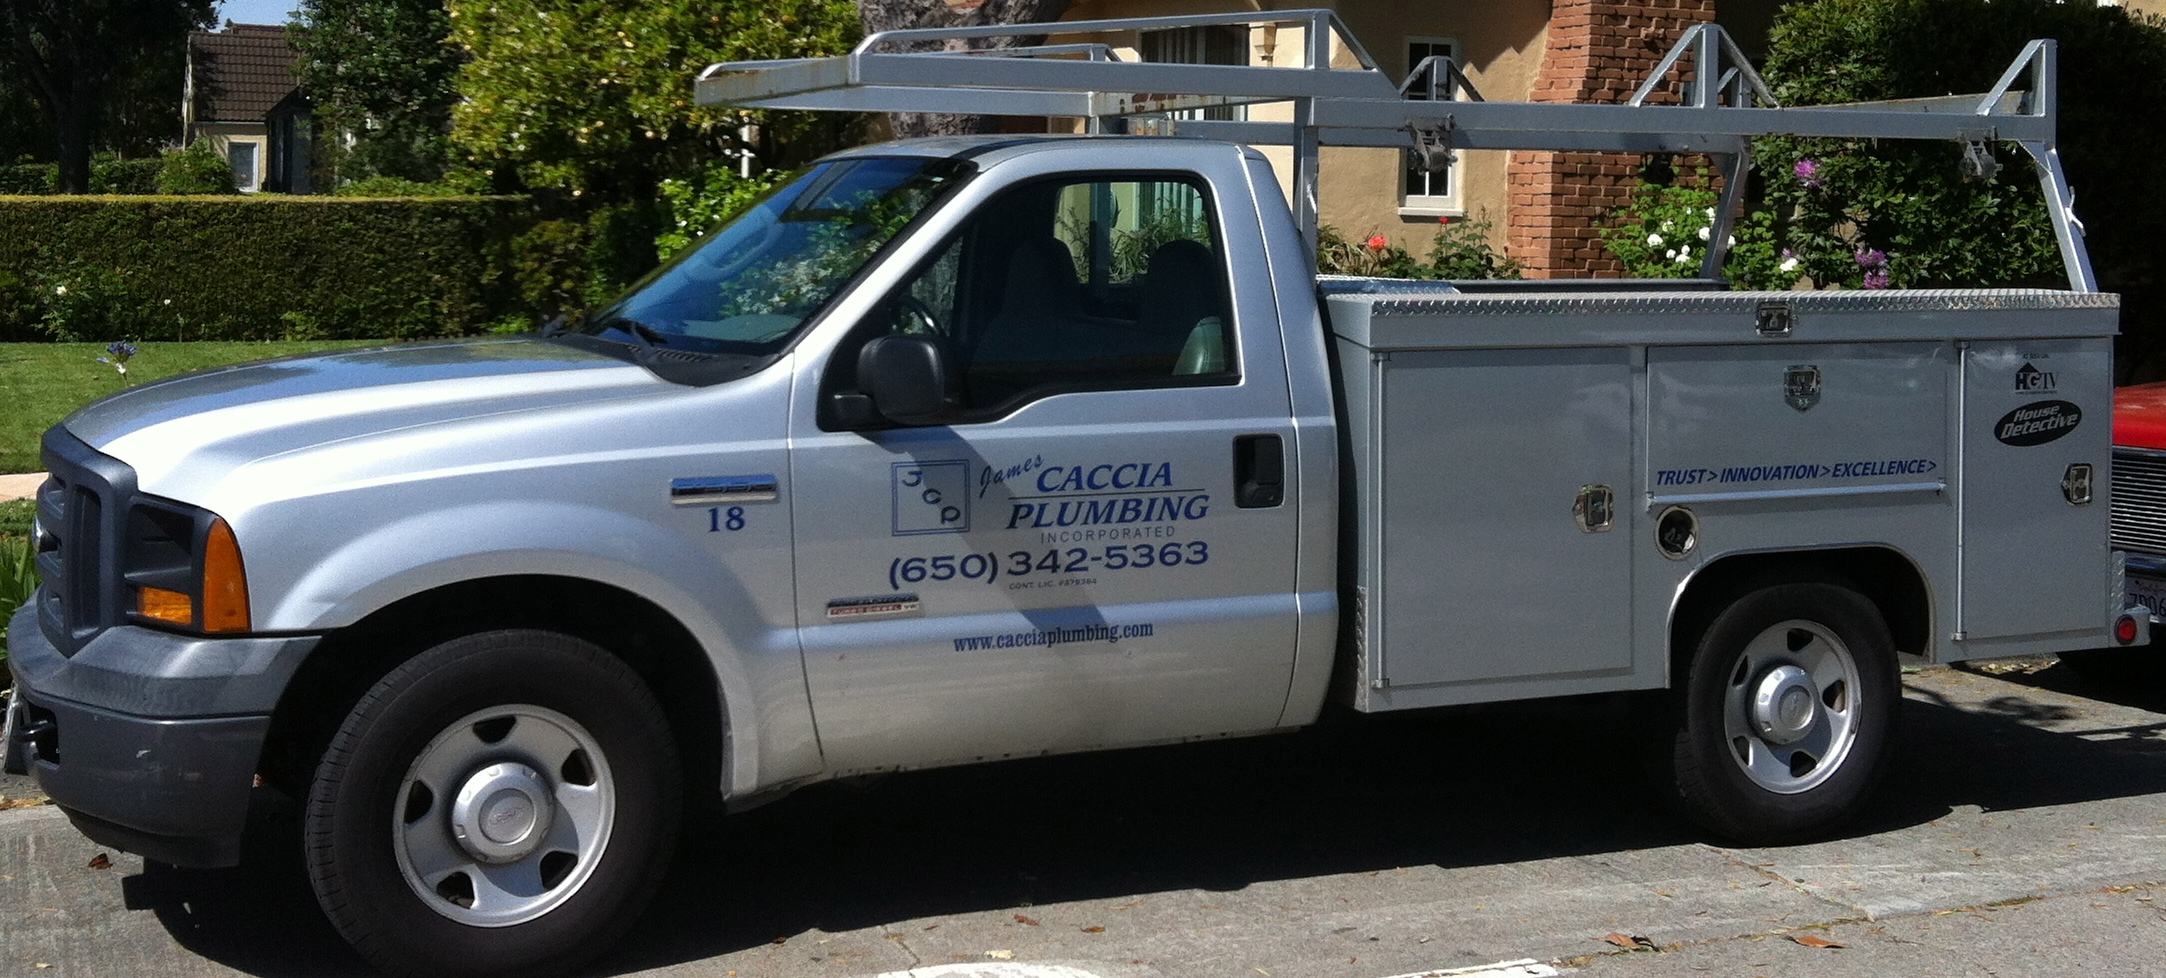 Commercial Auto Insurance - Truck